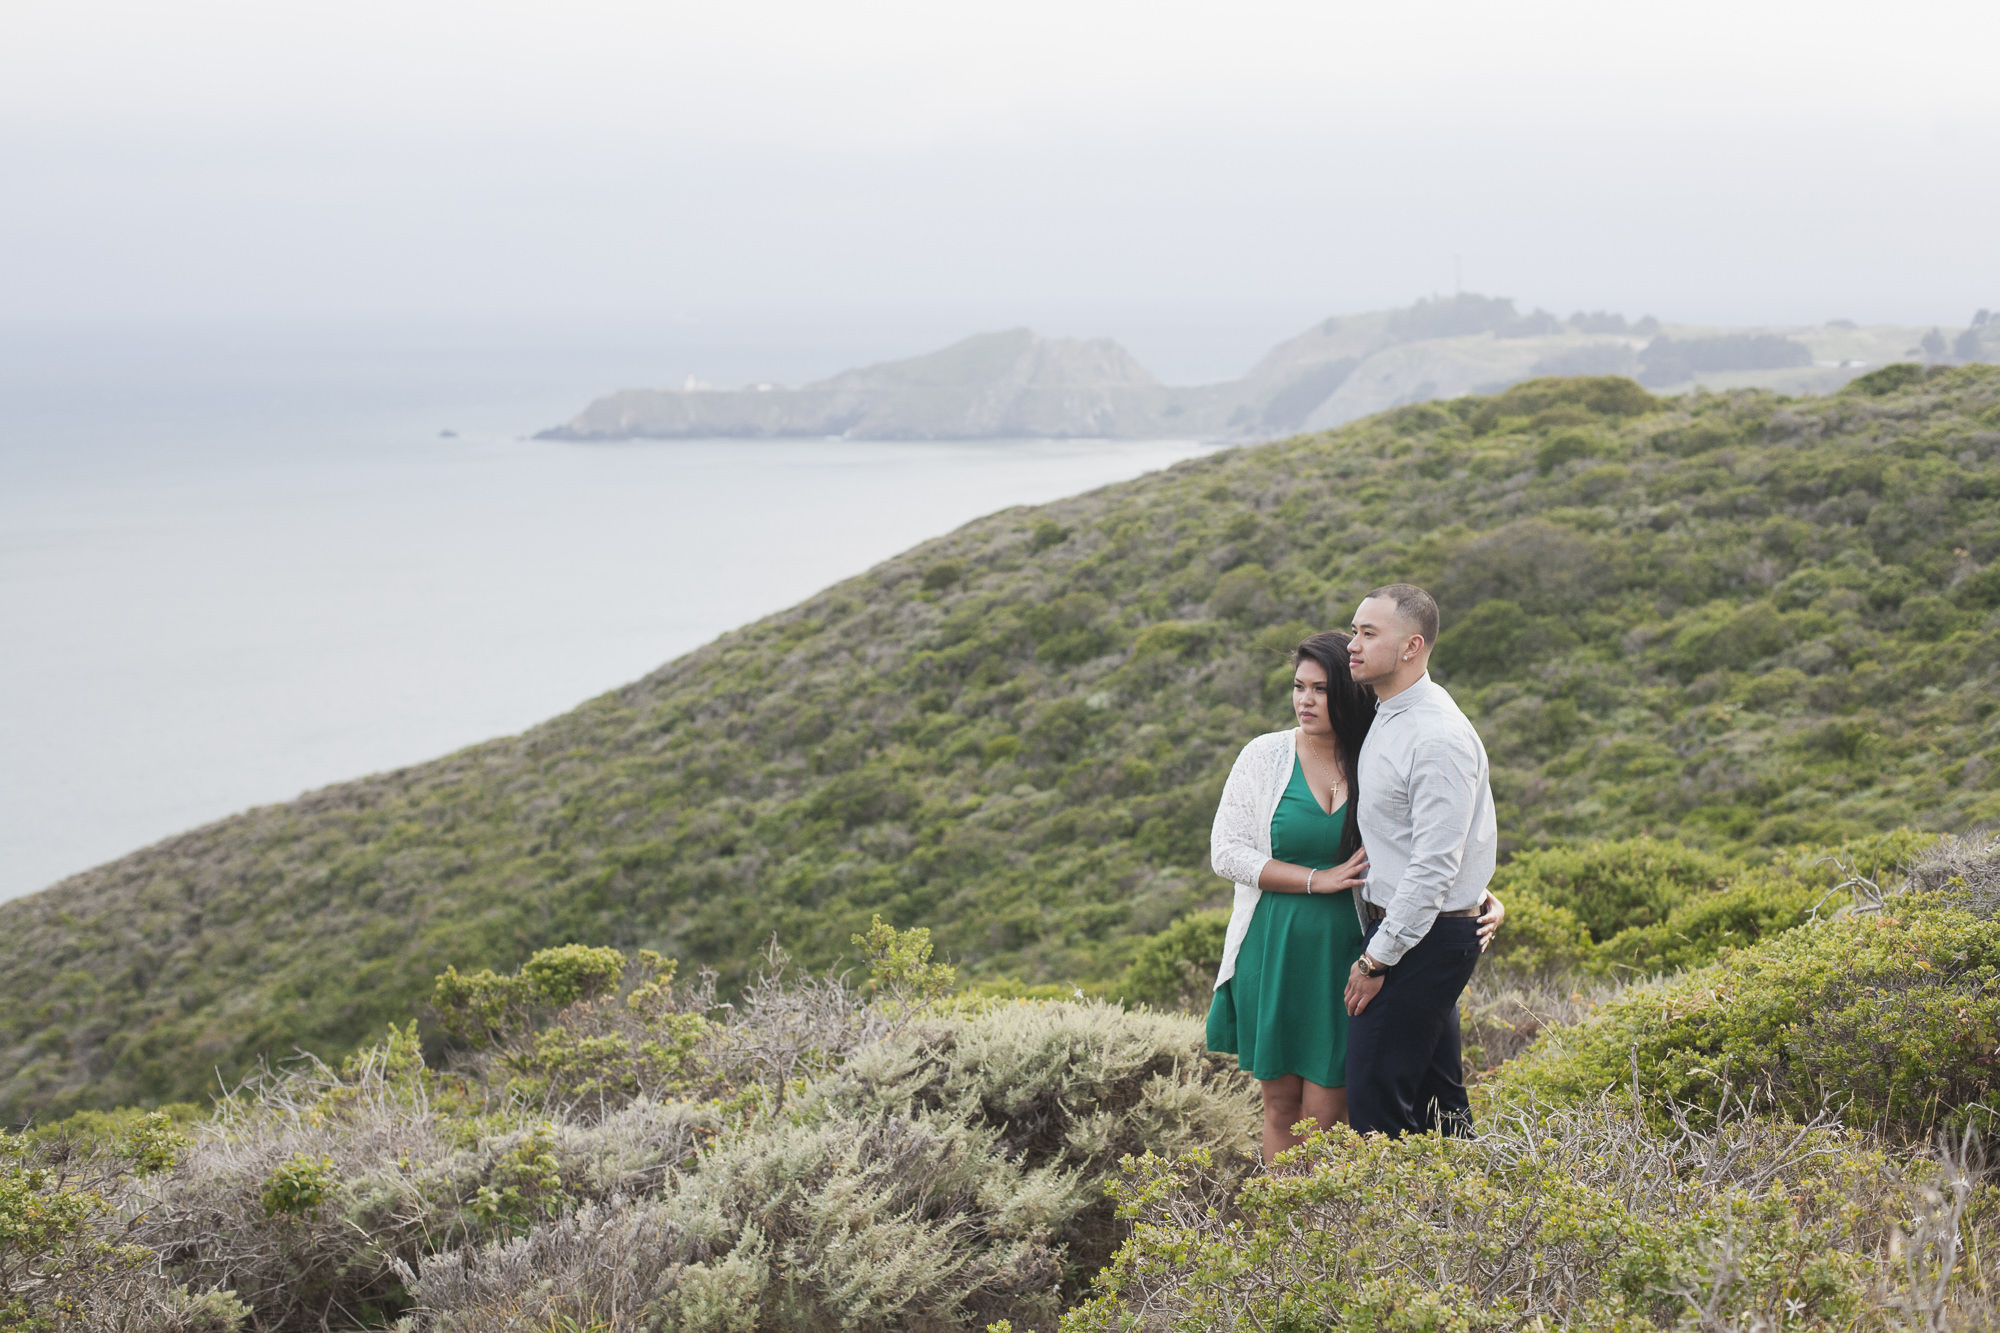 Engagement session in the rolling hills of the Marin Headlands